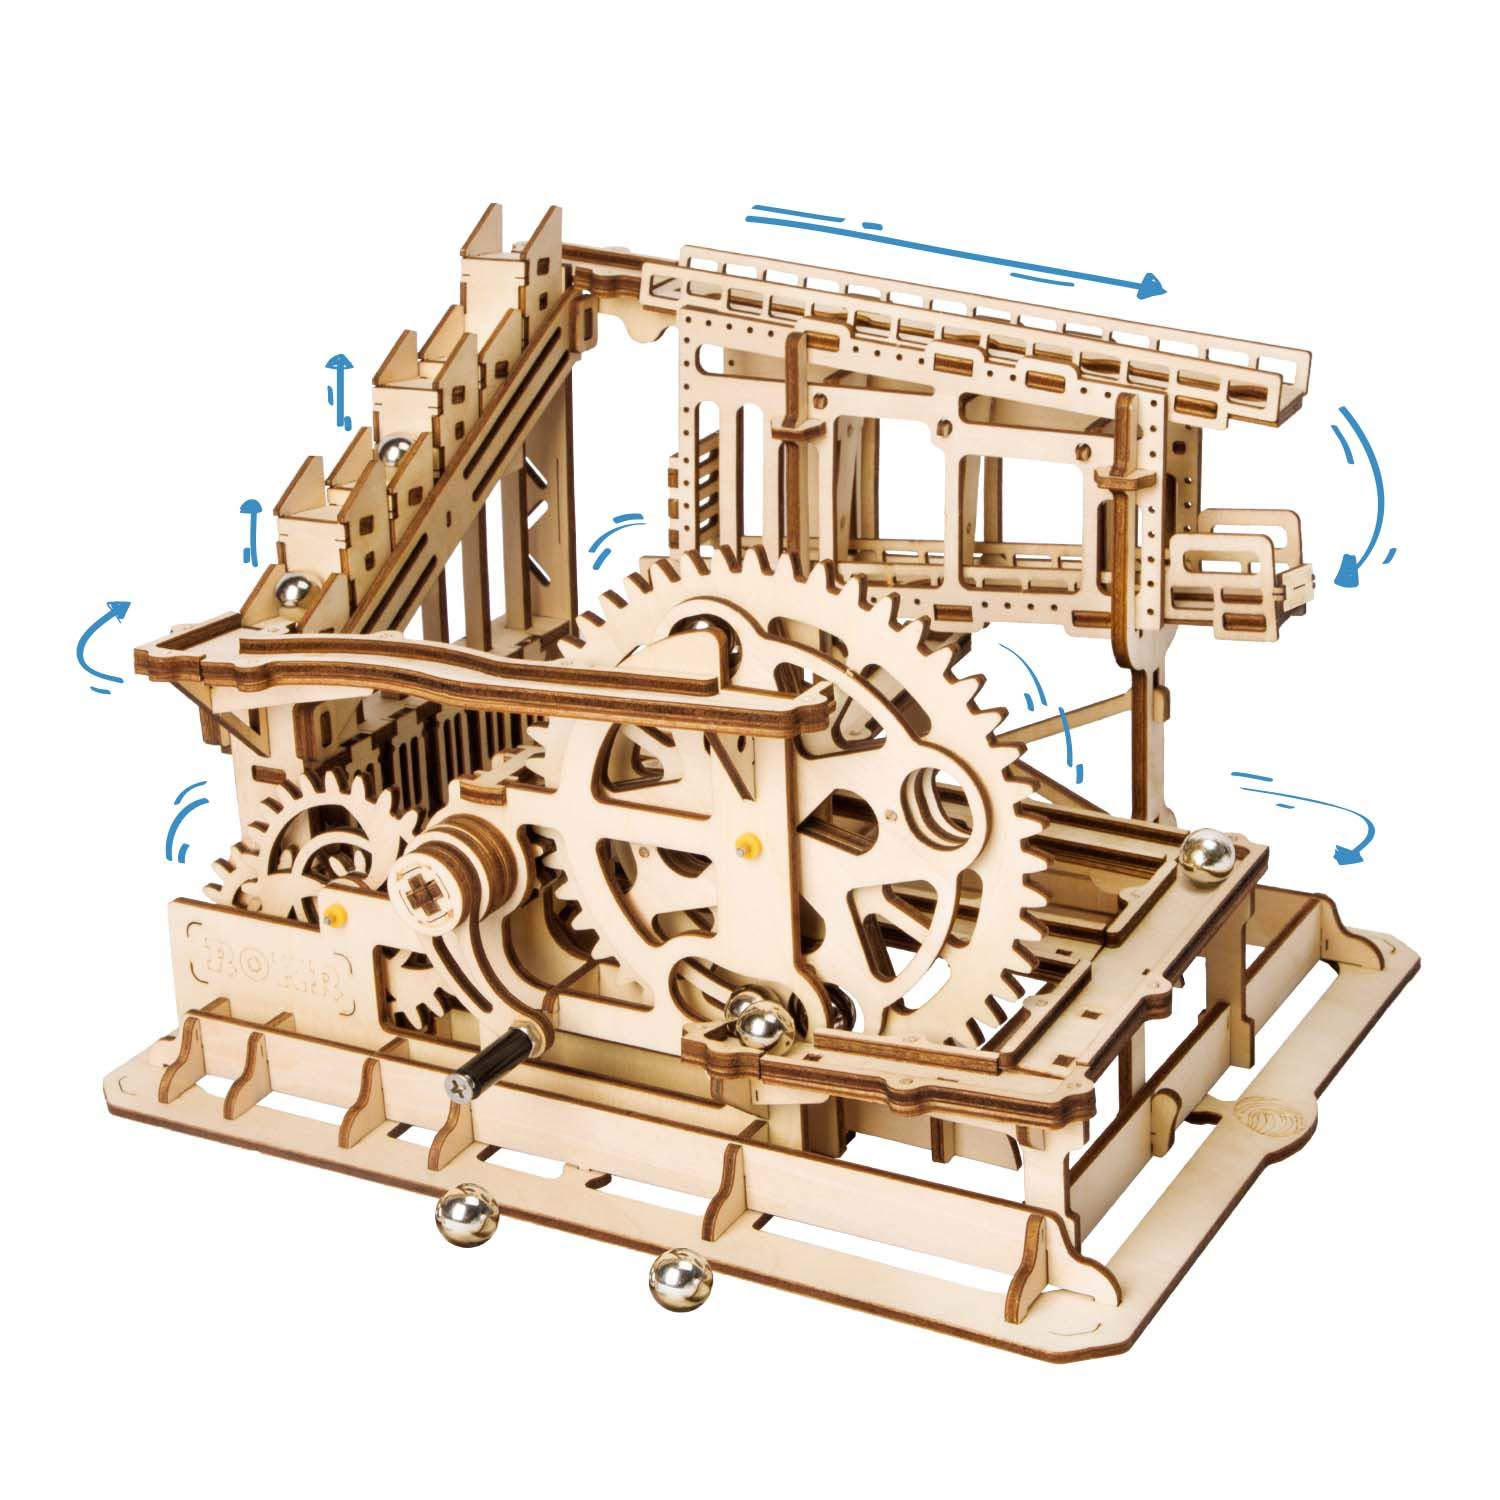 Rowood 3D Wooden Marble Run Puzzle Craft Toy, Gift for Adults & Teen Boys Girls, Age 14+, DIY Model Building Kits - Cog Coaster